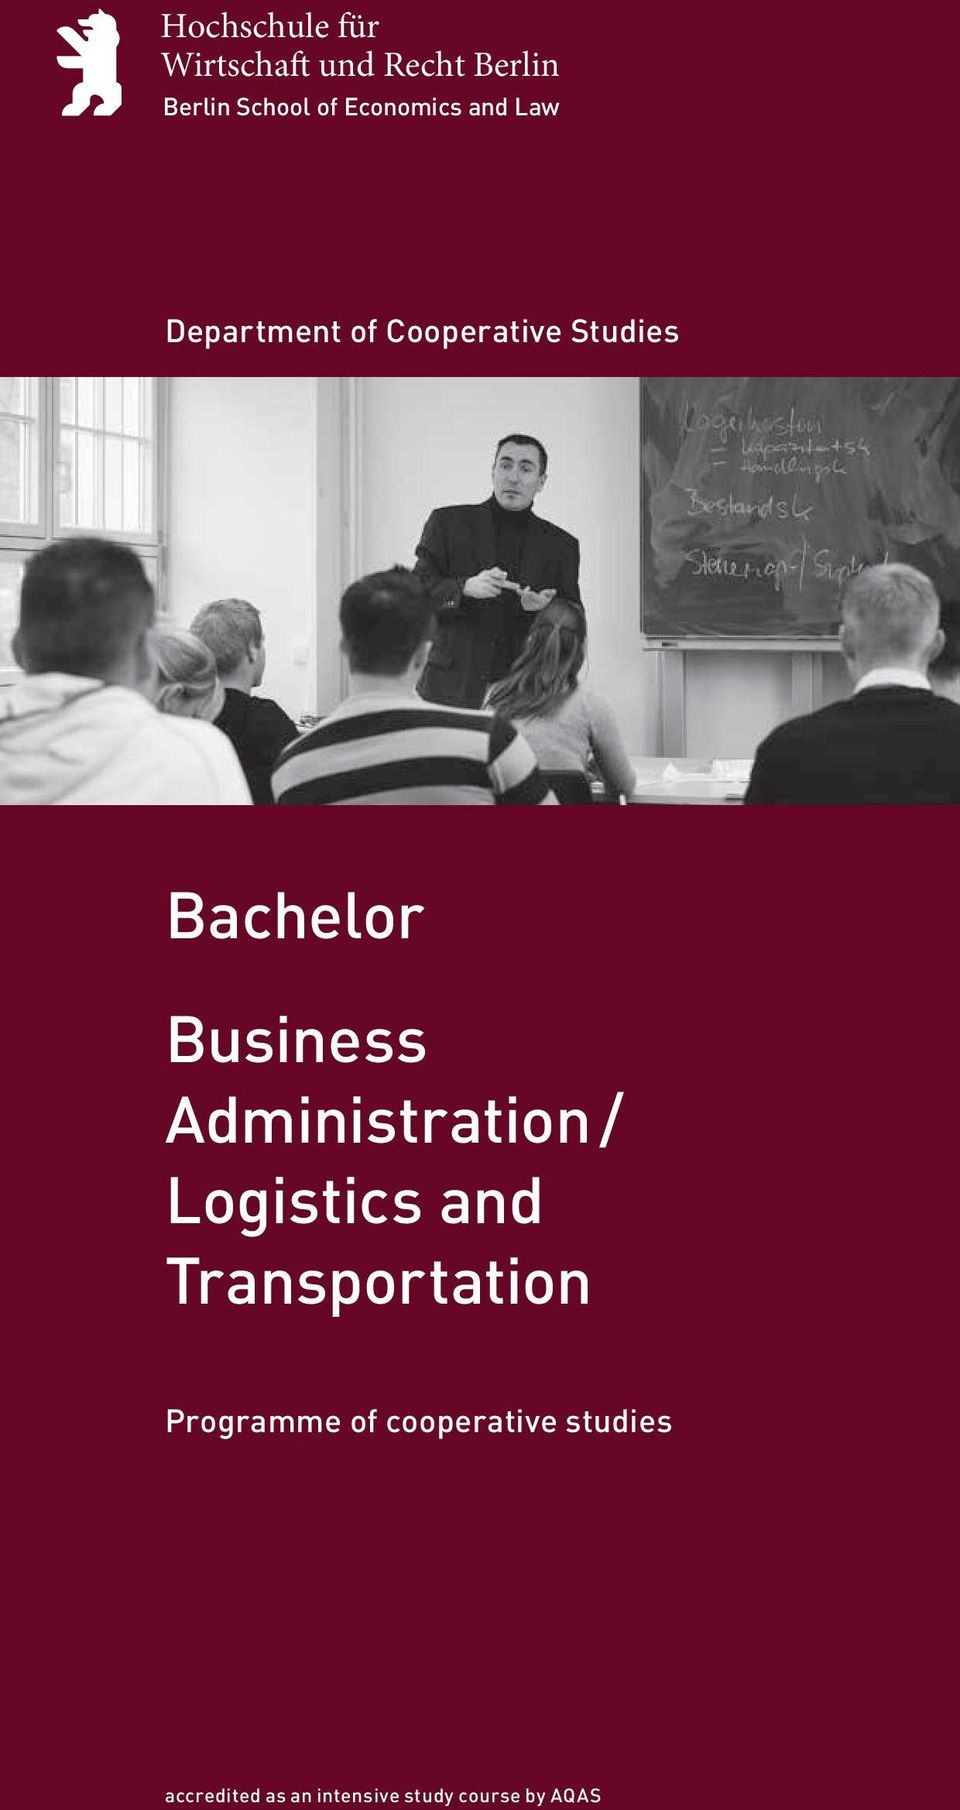 Business Administration / Logistics and Transportation